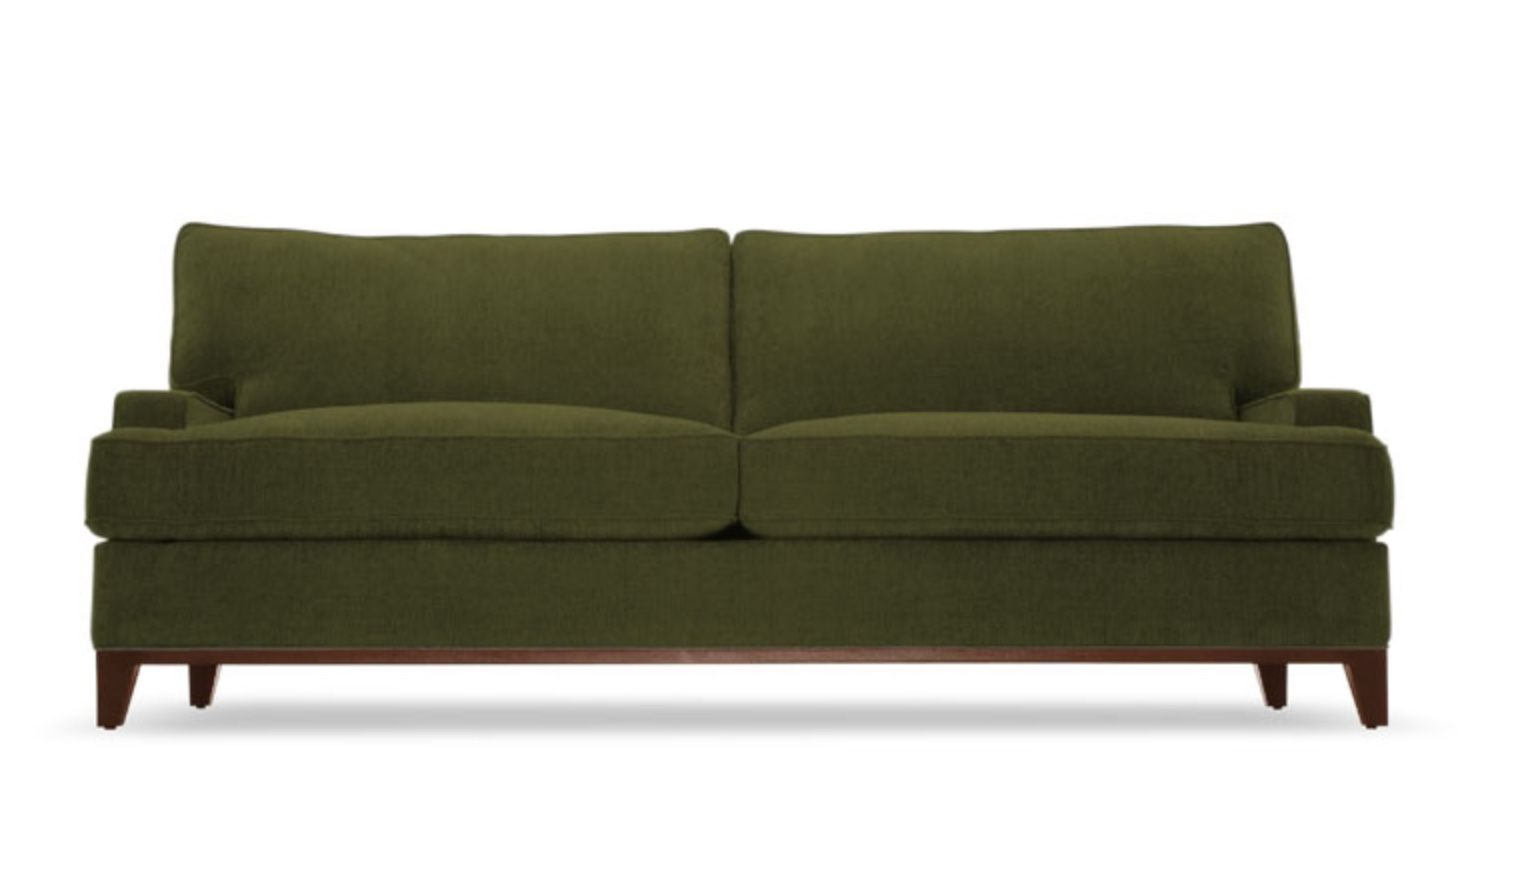 Charmant Presley Sofa